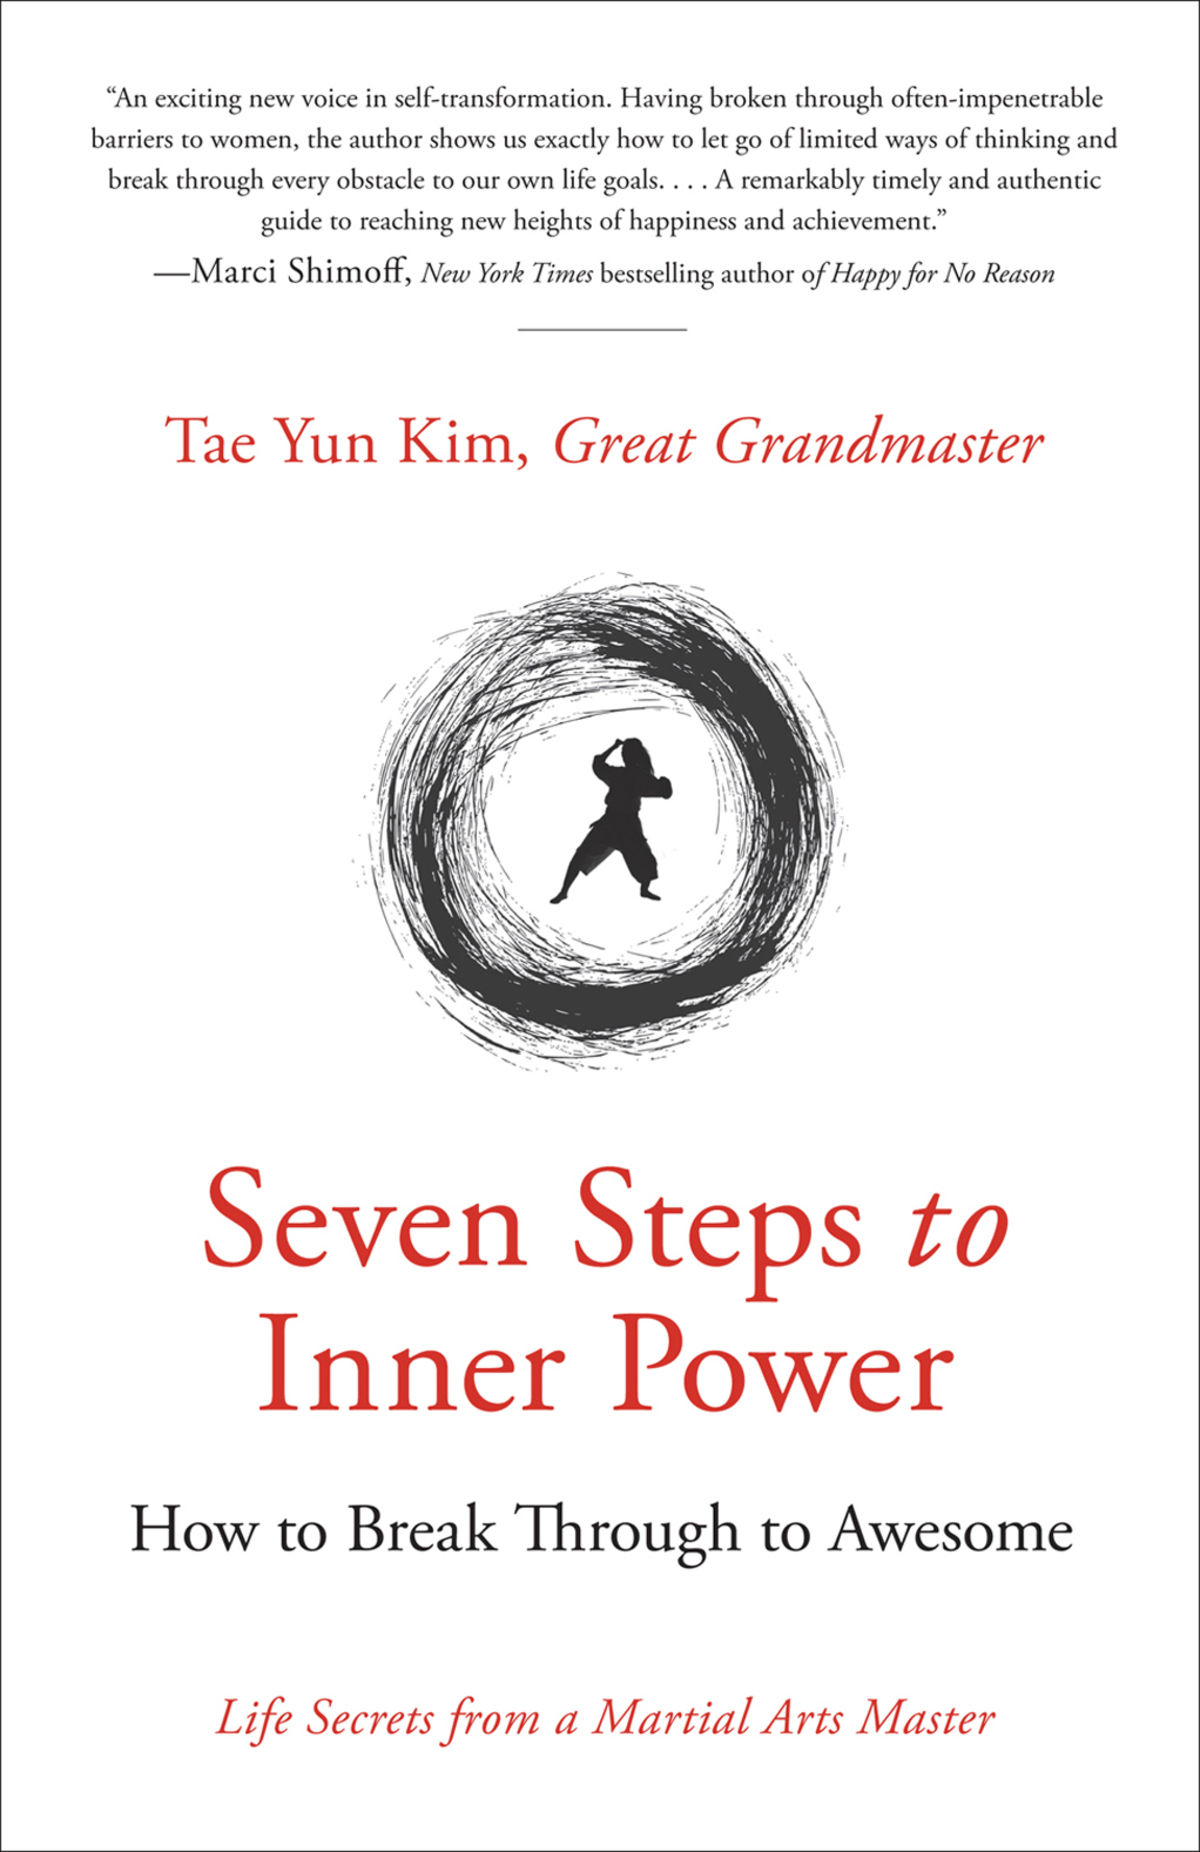 Seven Steps to Inner Power | Psychology Today